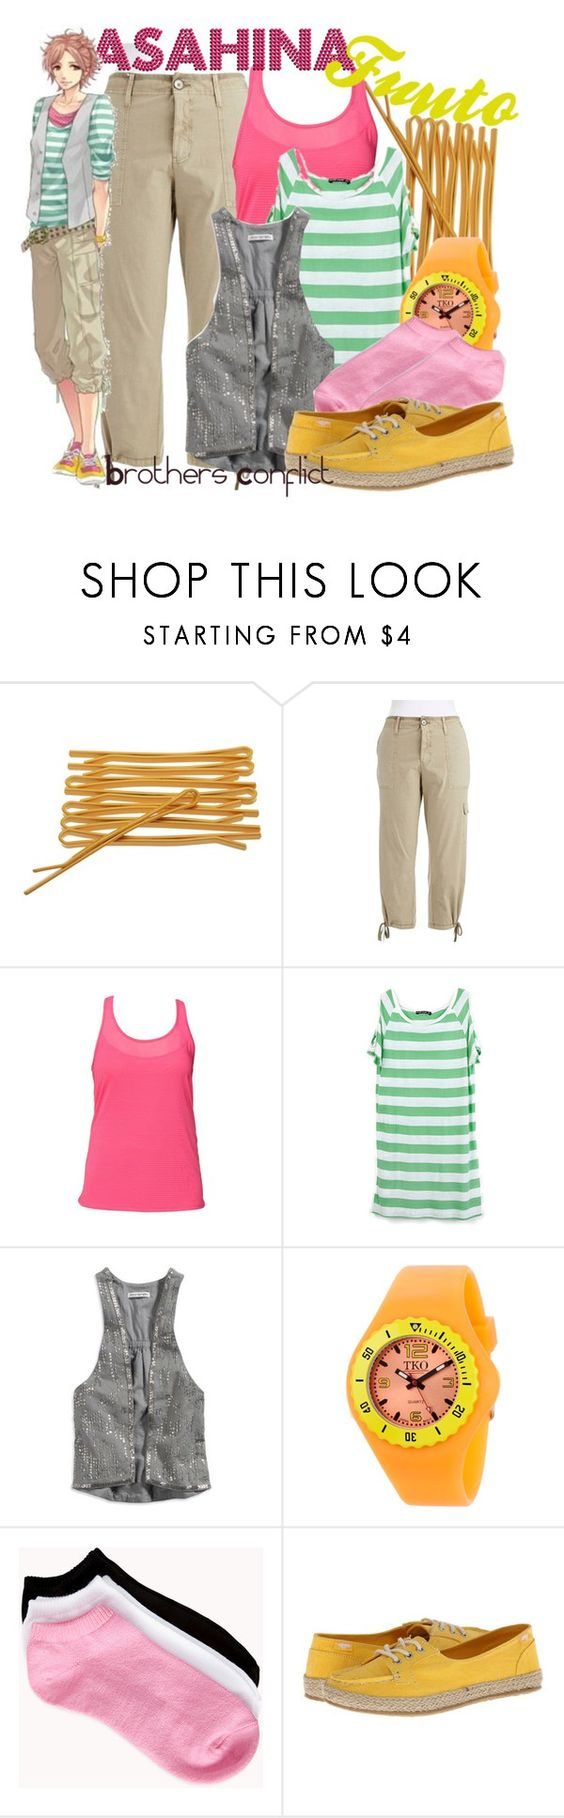 """Asahina Fuuto, from Brothers Conflict"" by blackrabbitmegapig ❤ liked on Polyvore featuring L. Erickson, DKNY Jeans, Roxy, American Eagle Outfitters, Forever 21 and Rocket Dog"